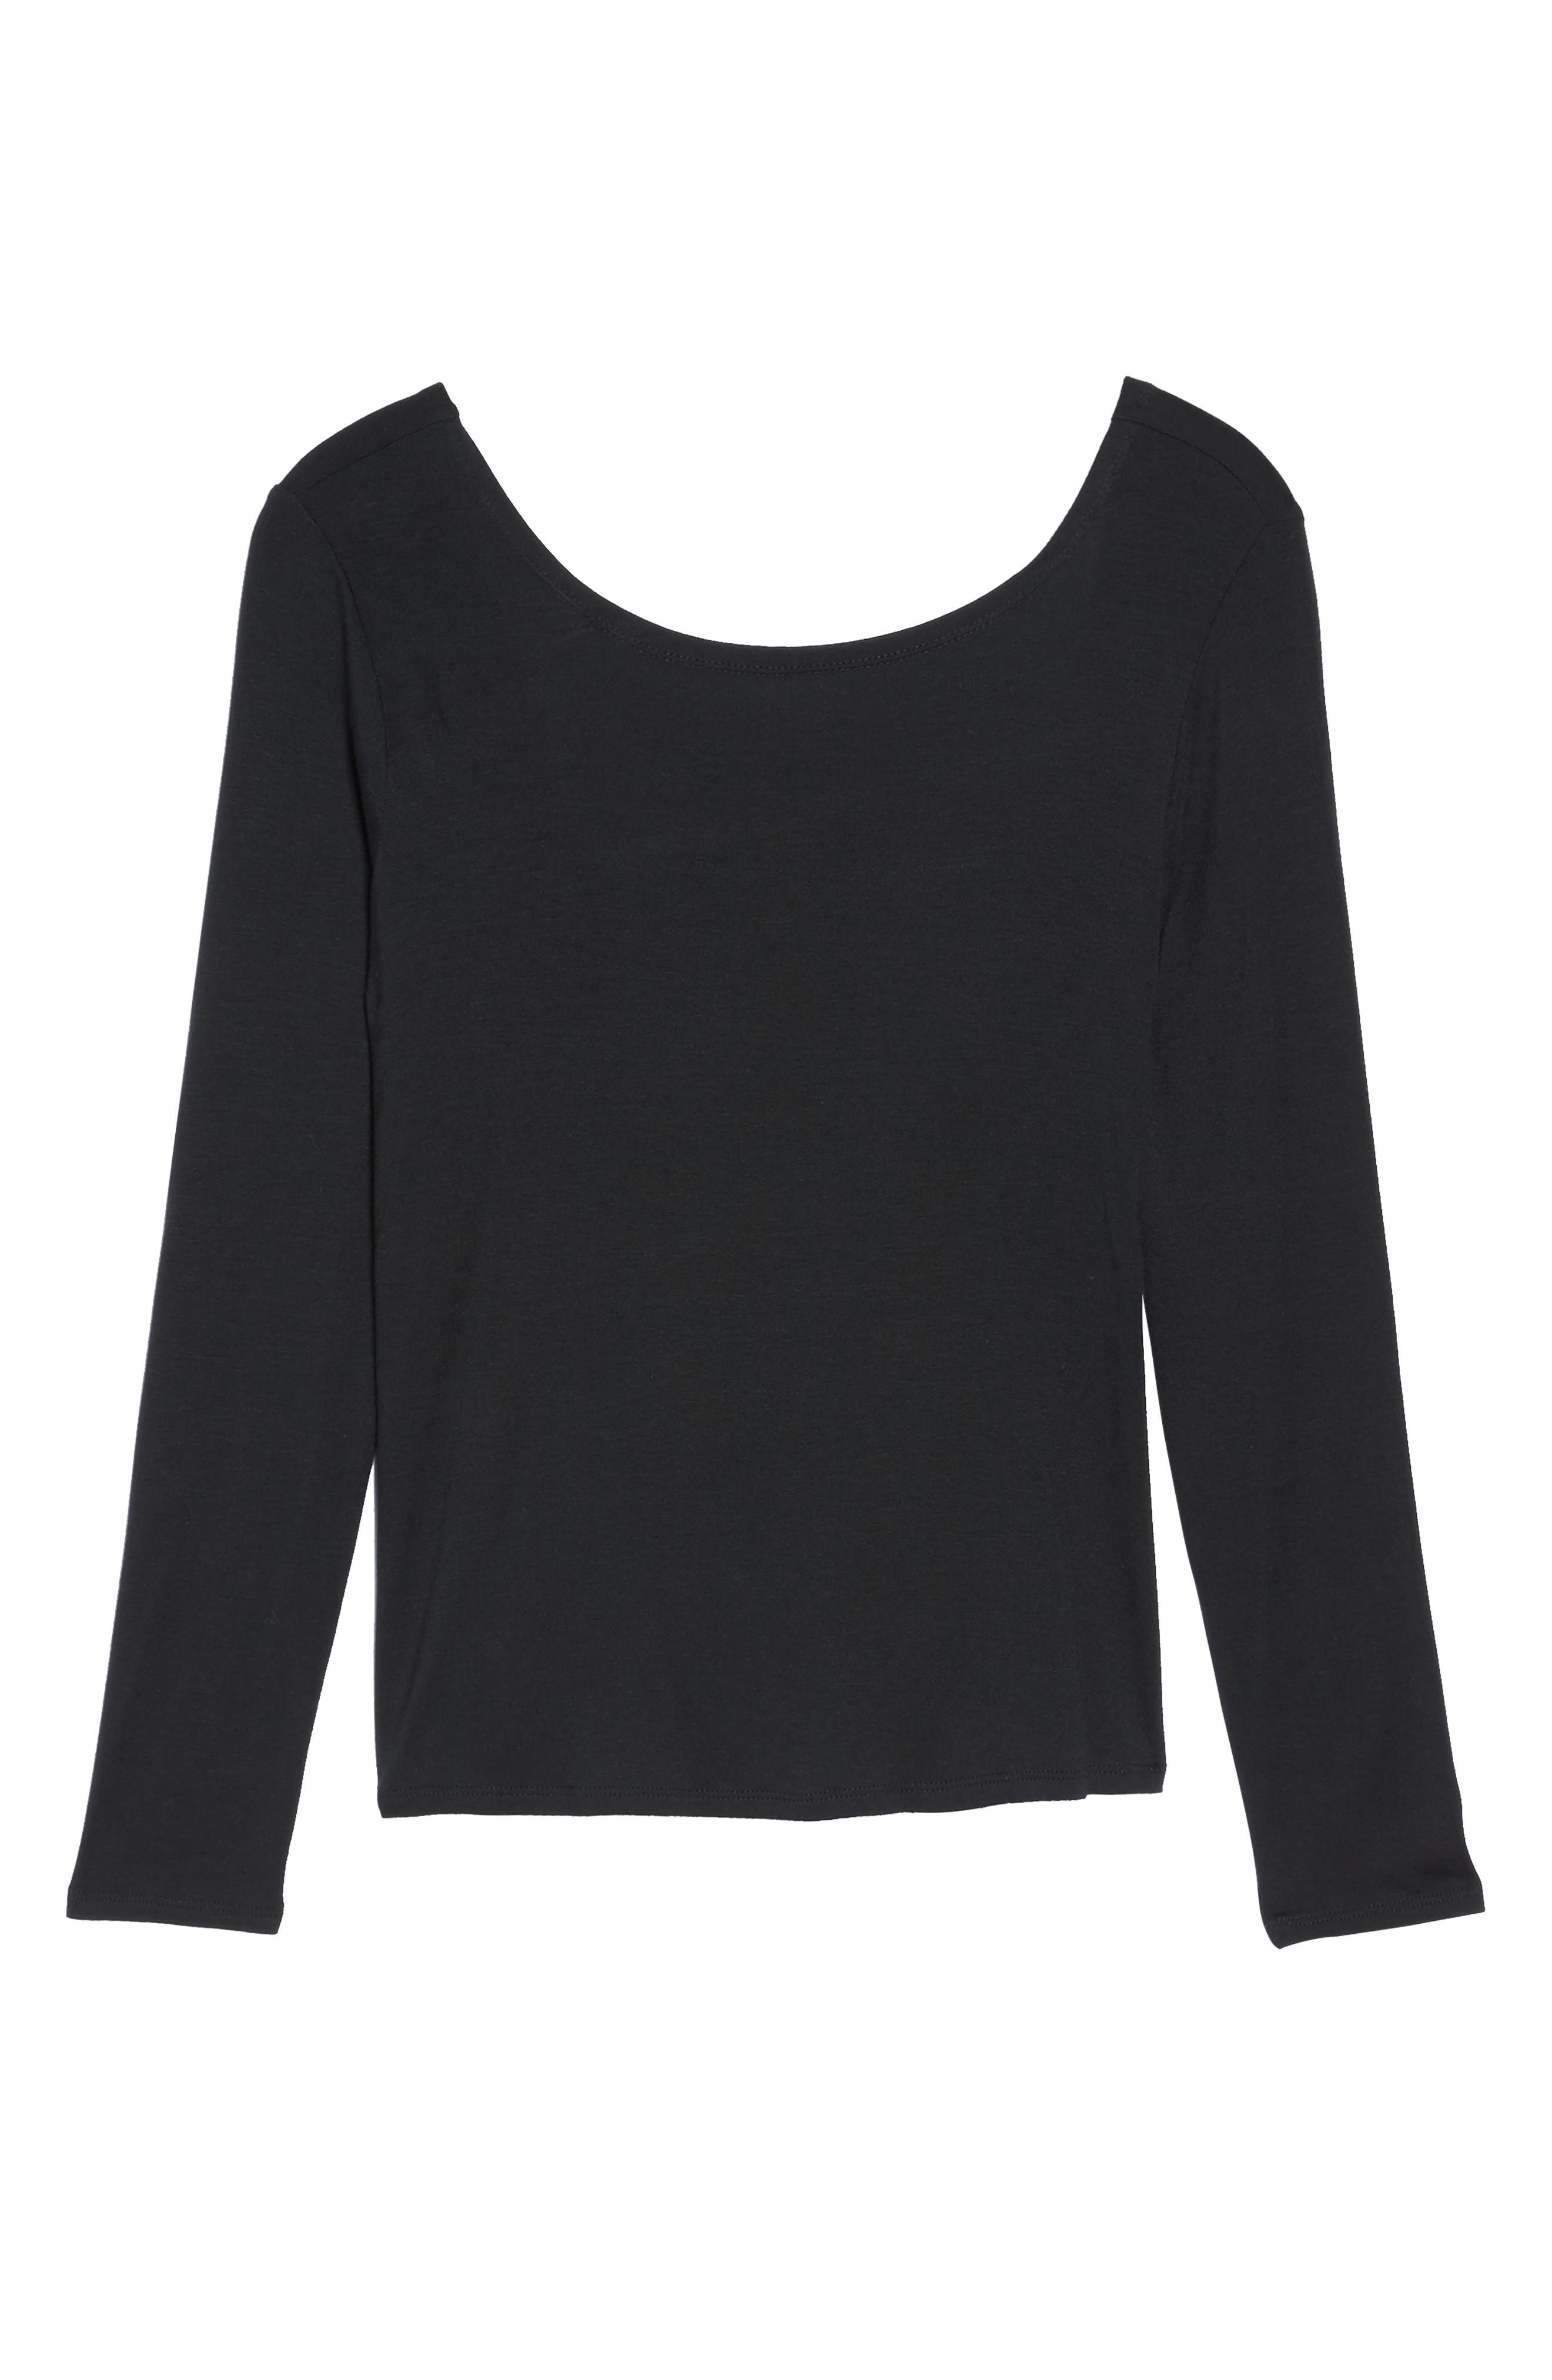 Twist of Fate Pullover,                             Alternate thumbnail 7, color,                             Black